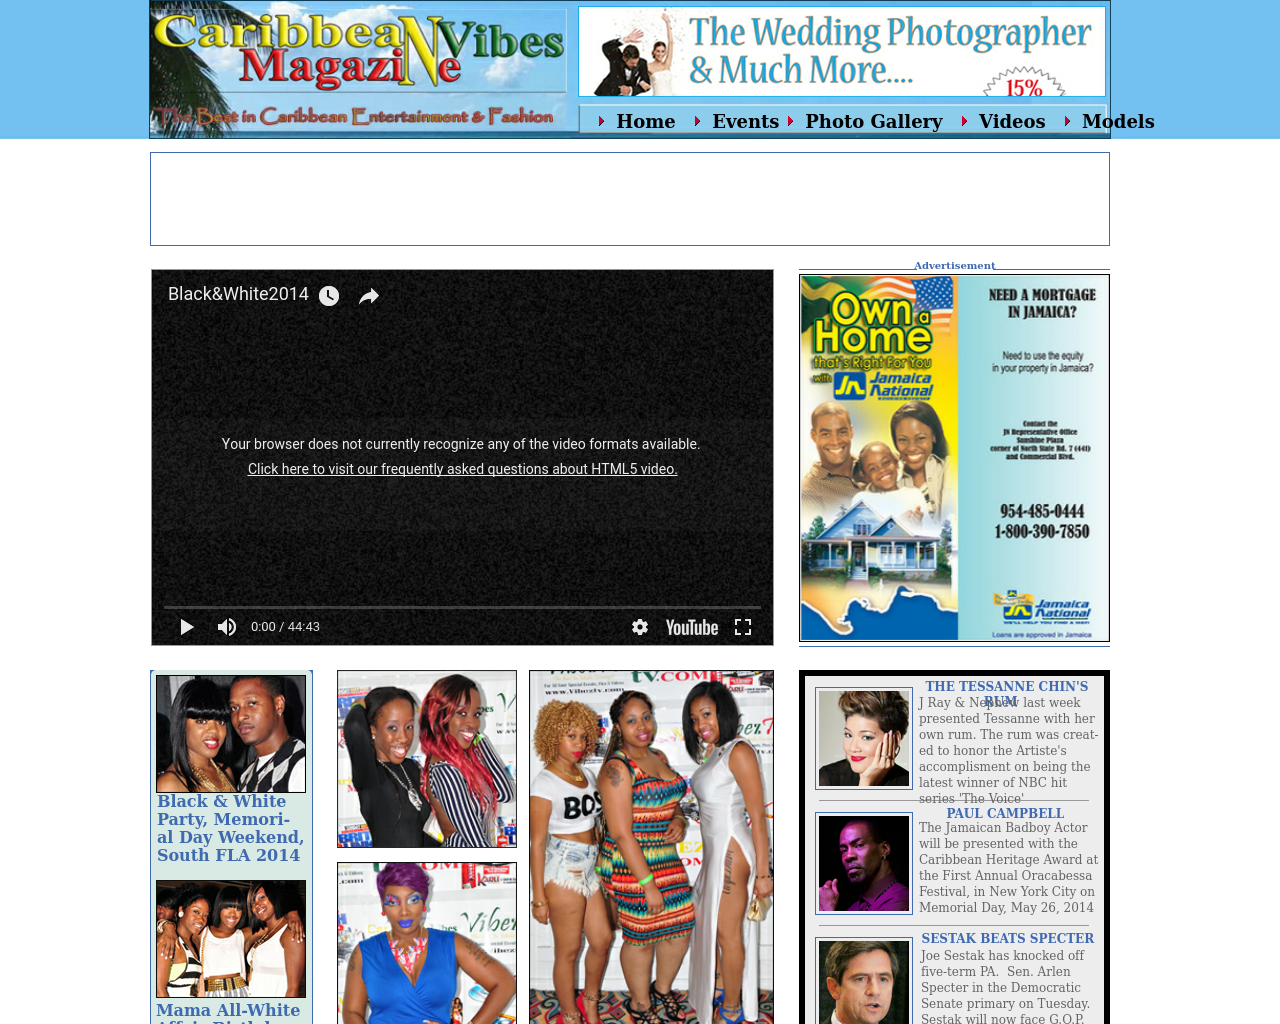 Caribbean-Vibes-Magazine-Advertising-Reviews-Pricing